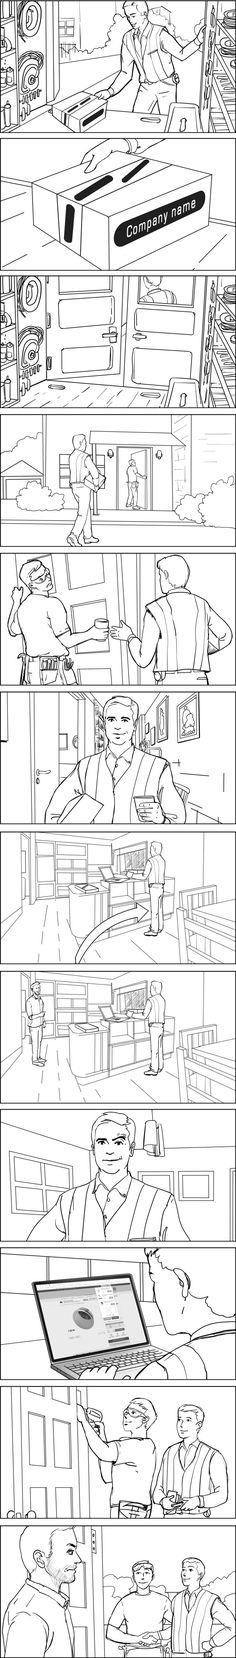 Captain America The First Avenger Storyboards  Album On Imgur